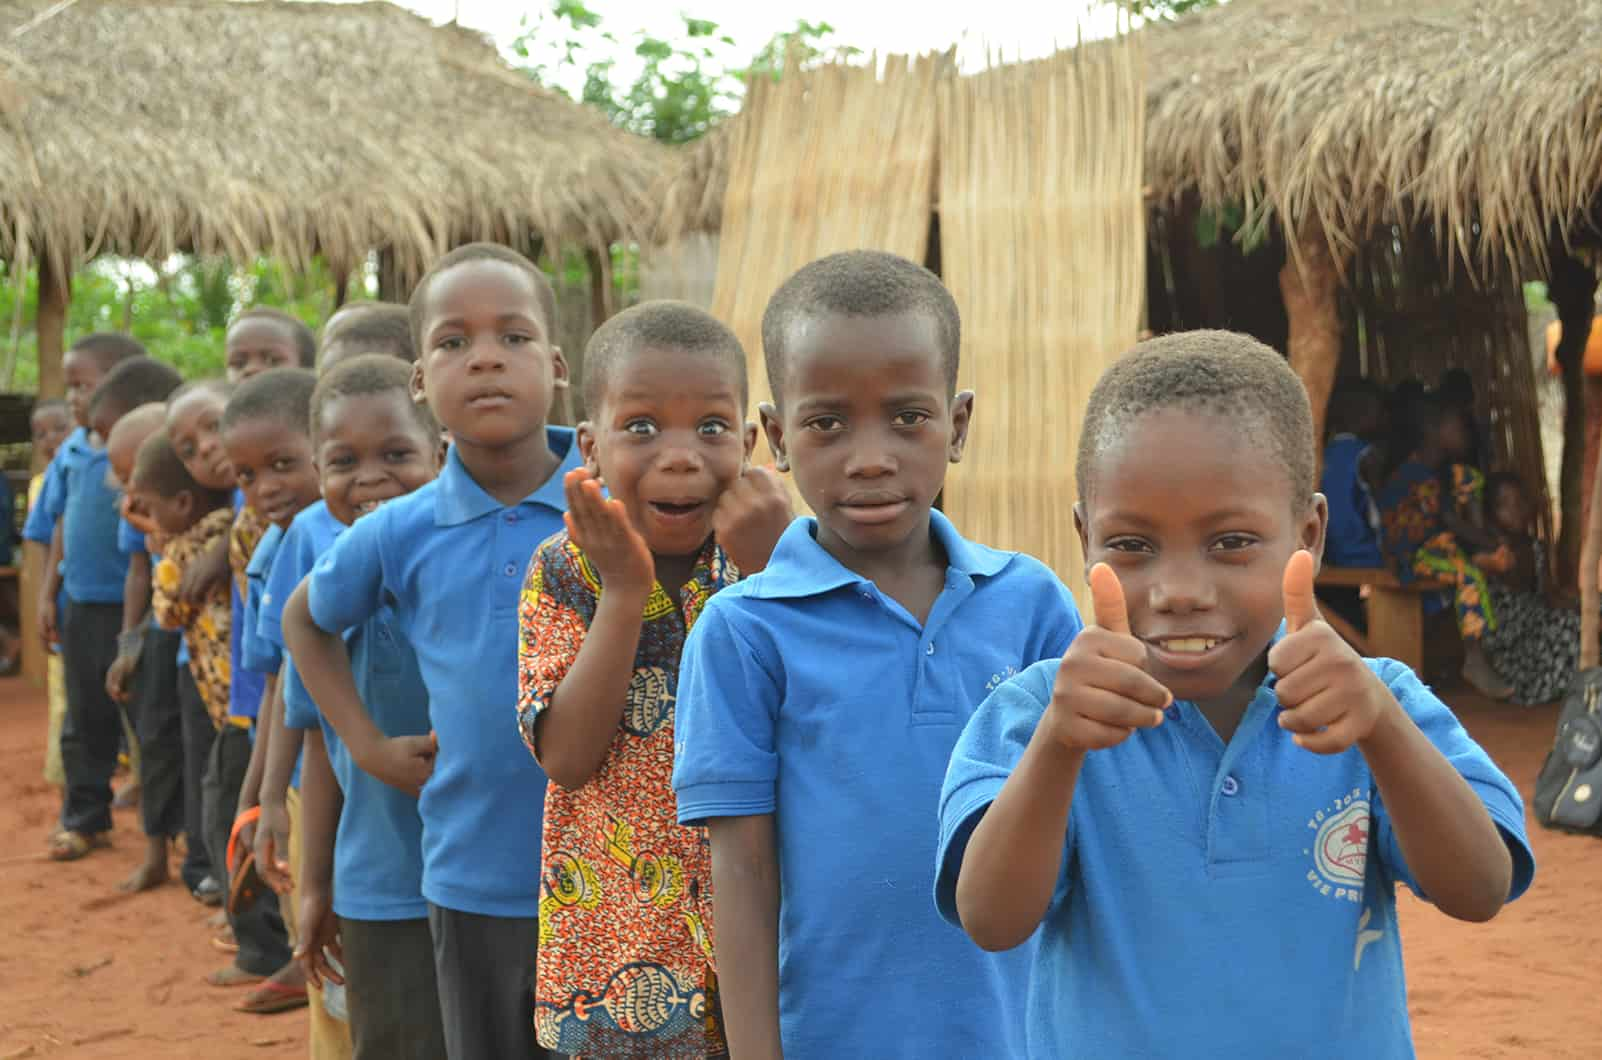 A line of kids in togo with one making a funny face